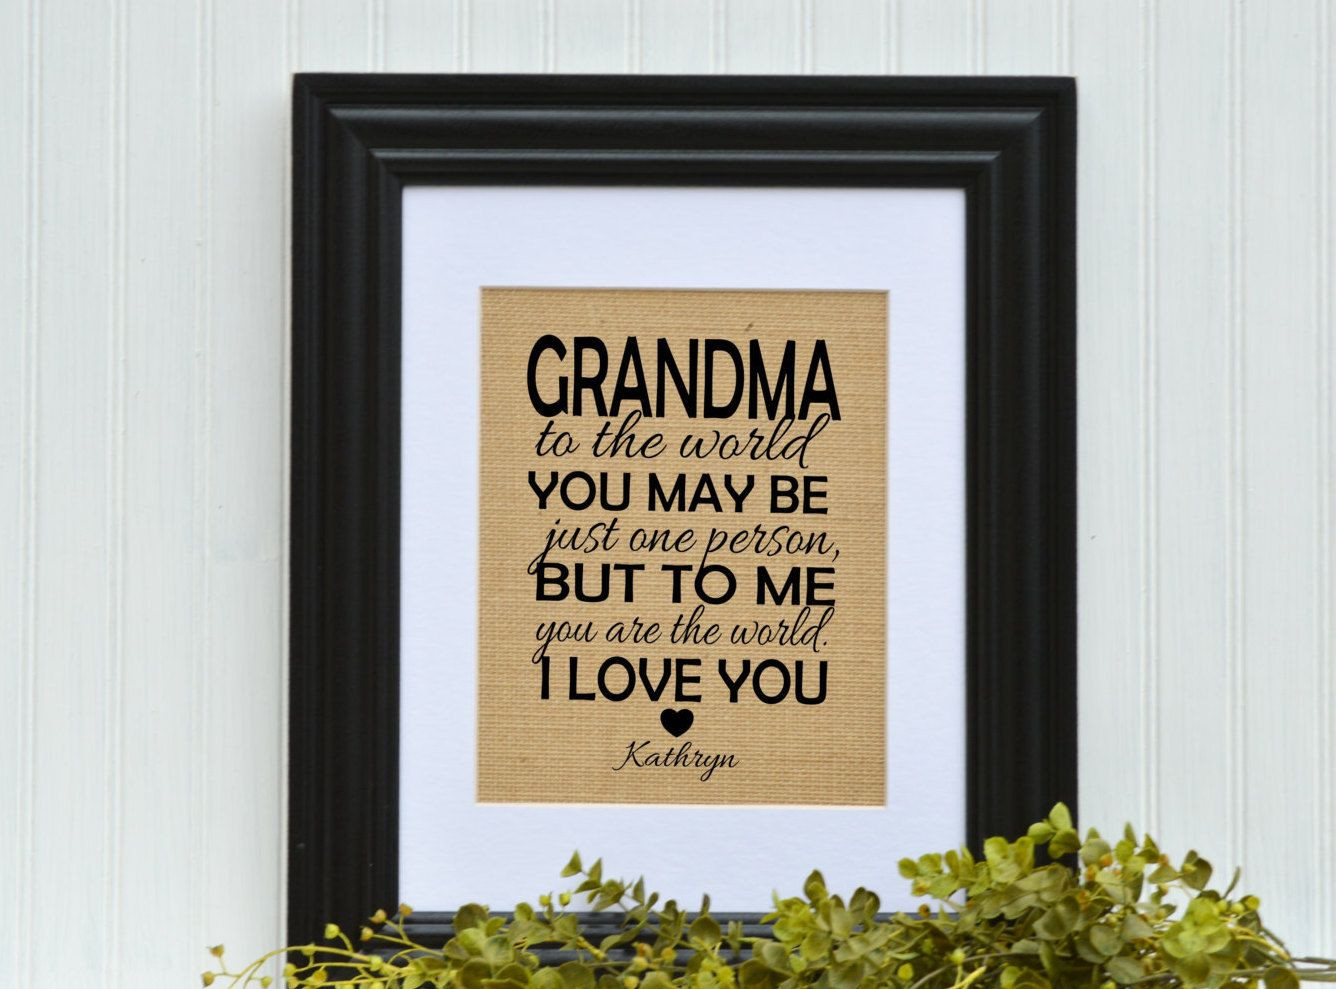 personalised grave vase of grandmother gift unique gift idea grandma birthday gift inside framed burlap gift grandmother gift unique gift idea grandma birthday gift grandmother birthday gift gift ideas for grandmother by blessedhomesteadshop